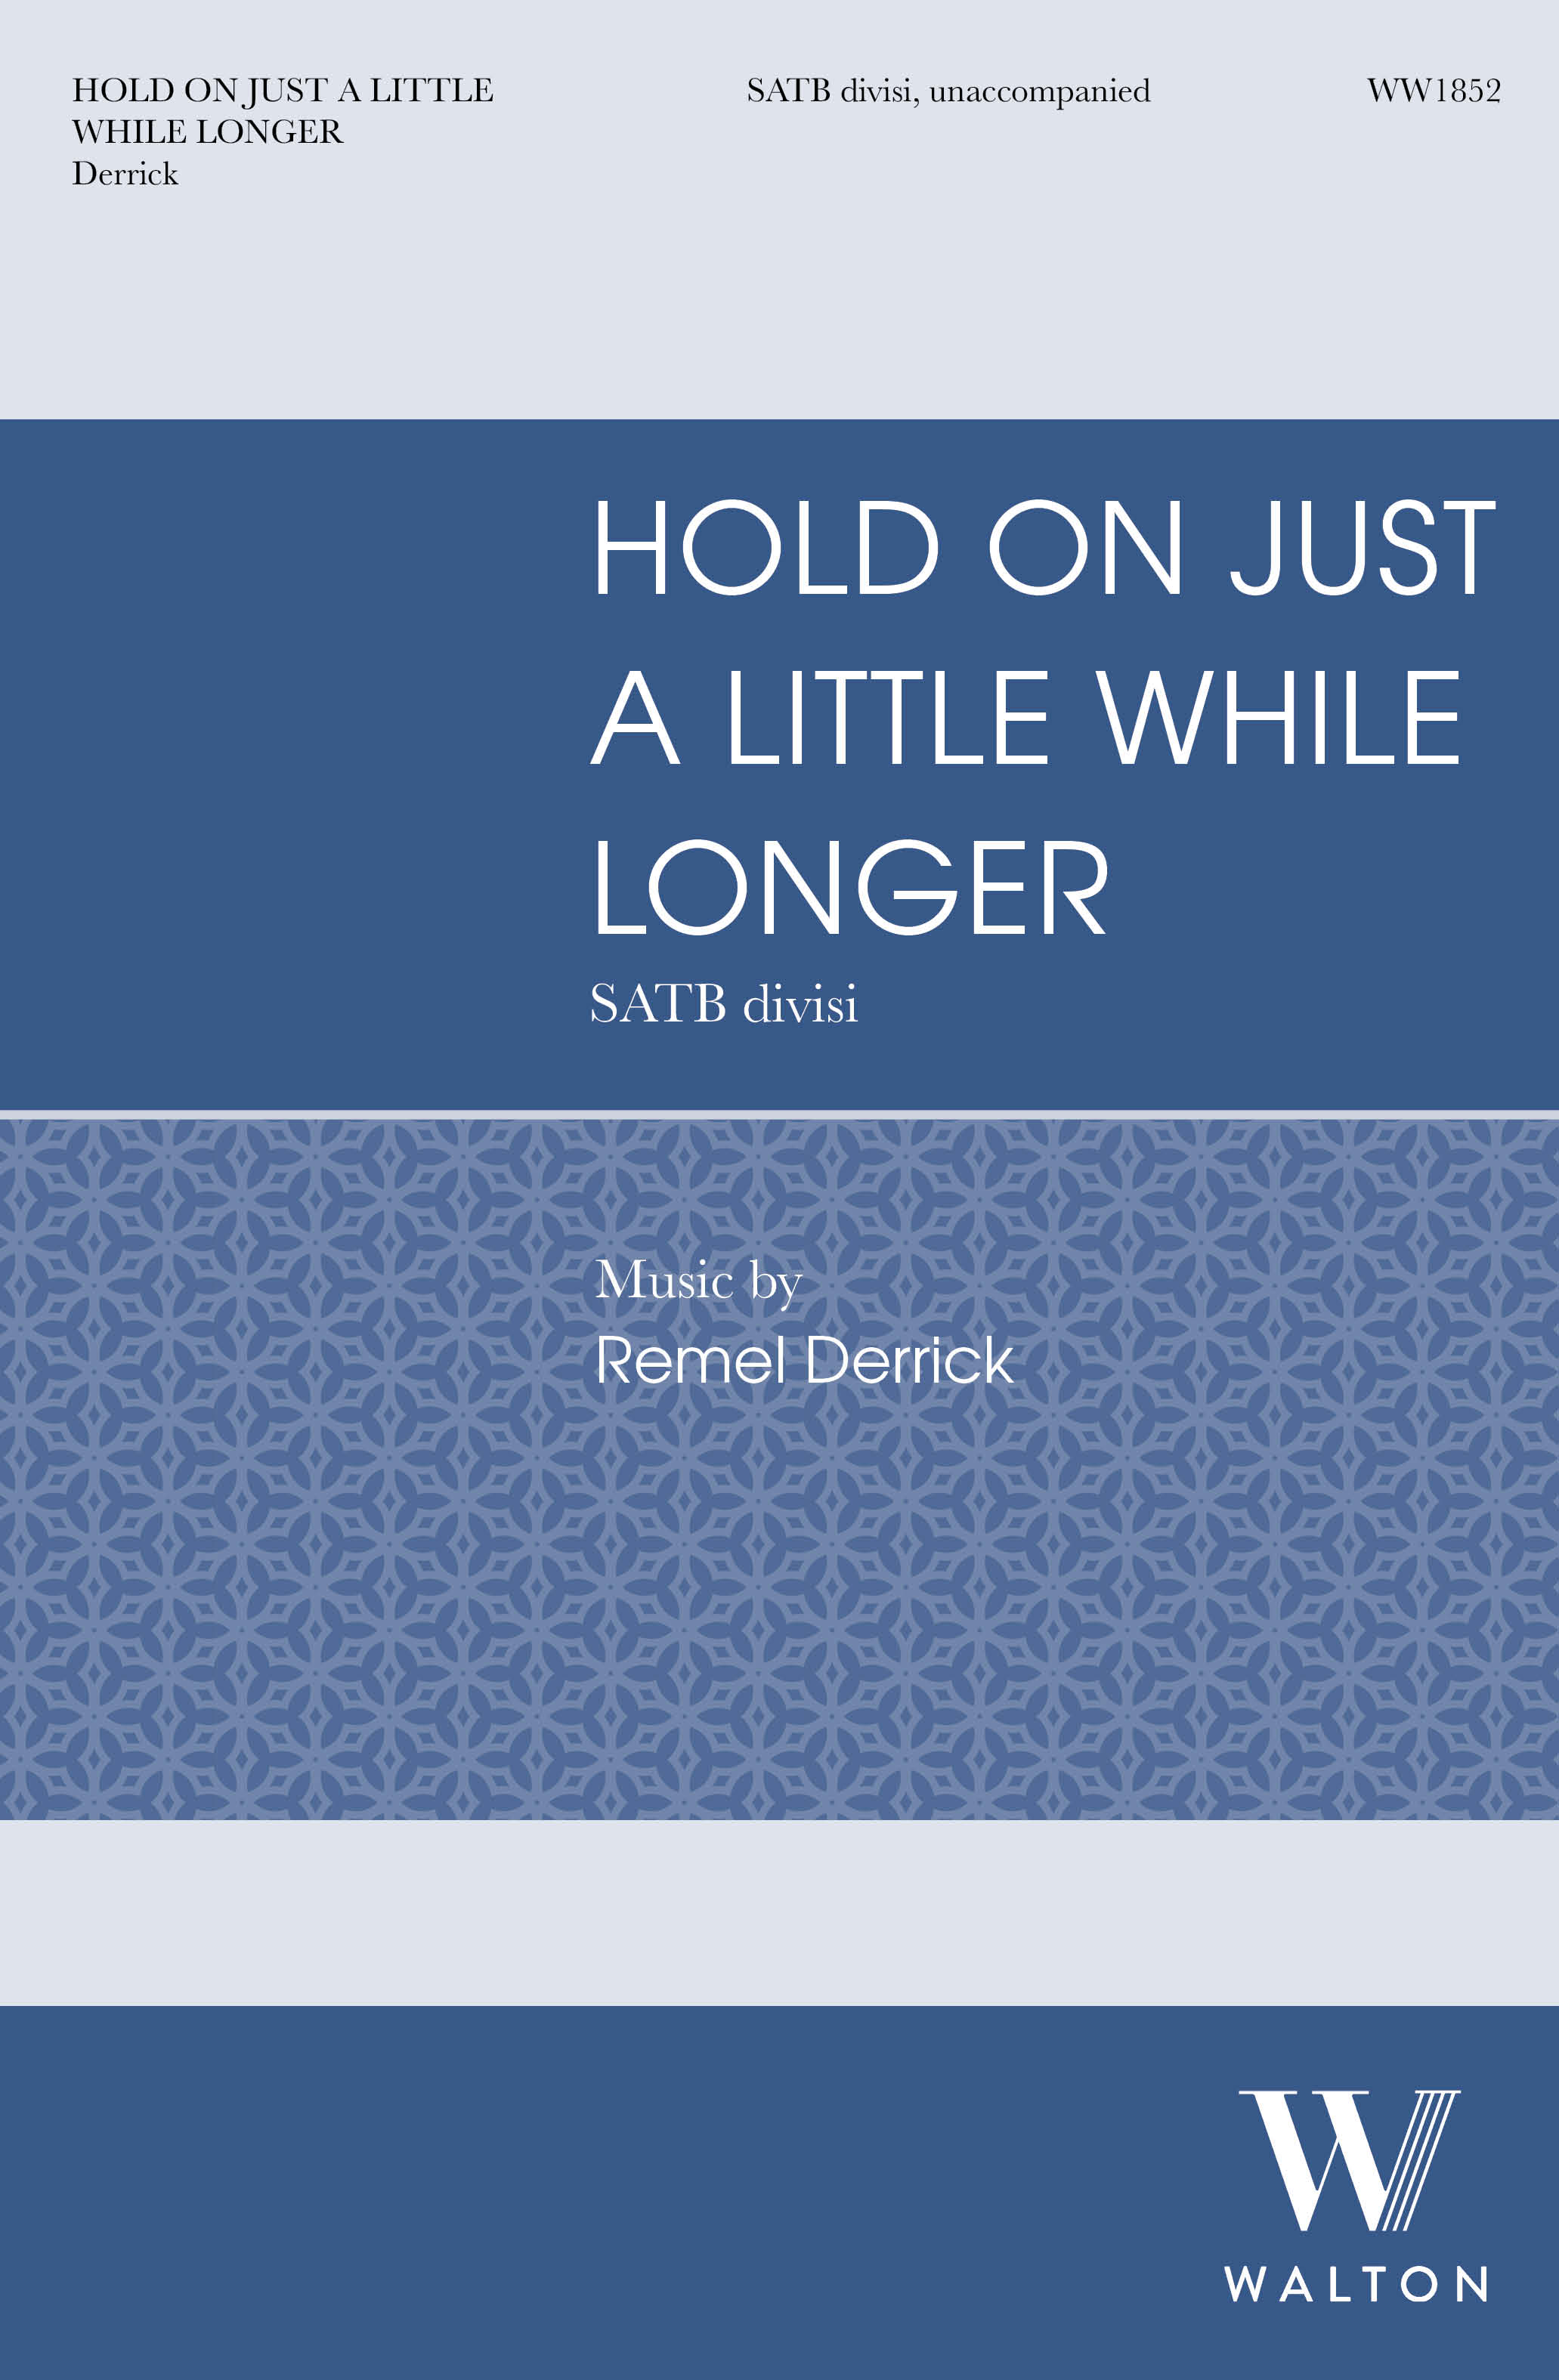 Hold On Just a Little While Longer: Mixed Choir A Cappella: Choral Score